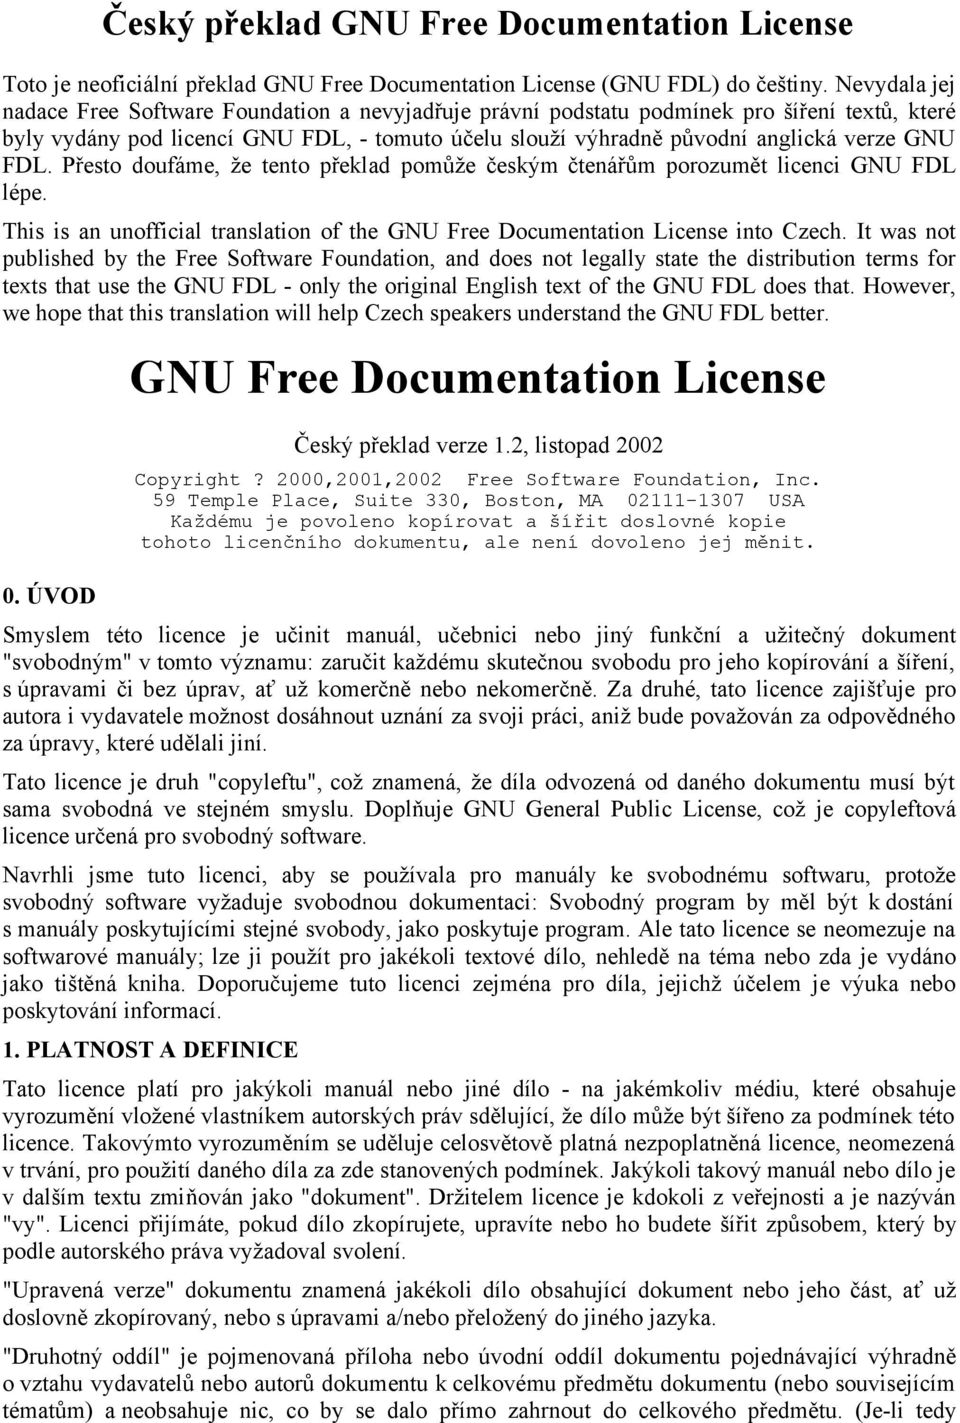 FDL. Přesto doufáme, že tento překlad pomůže českým čtenářům porozumět licenci GNU FDL lépe. This is an unofficial translation of the GNU Free Documentation License into Czech.